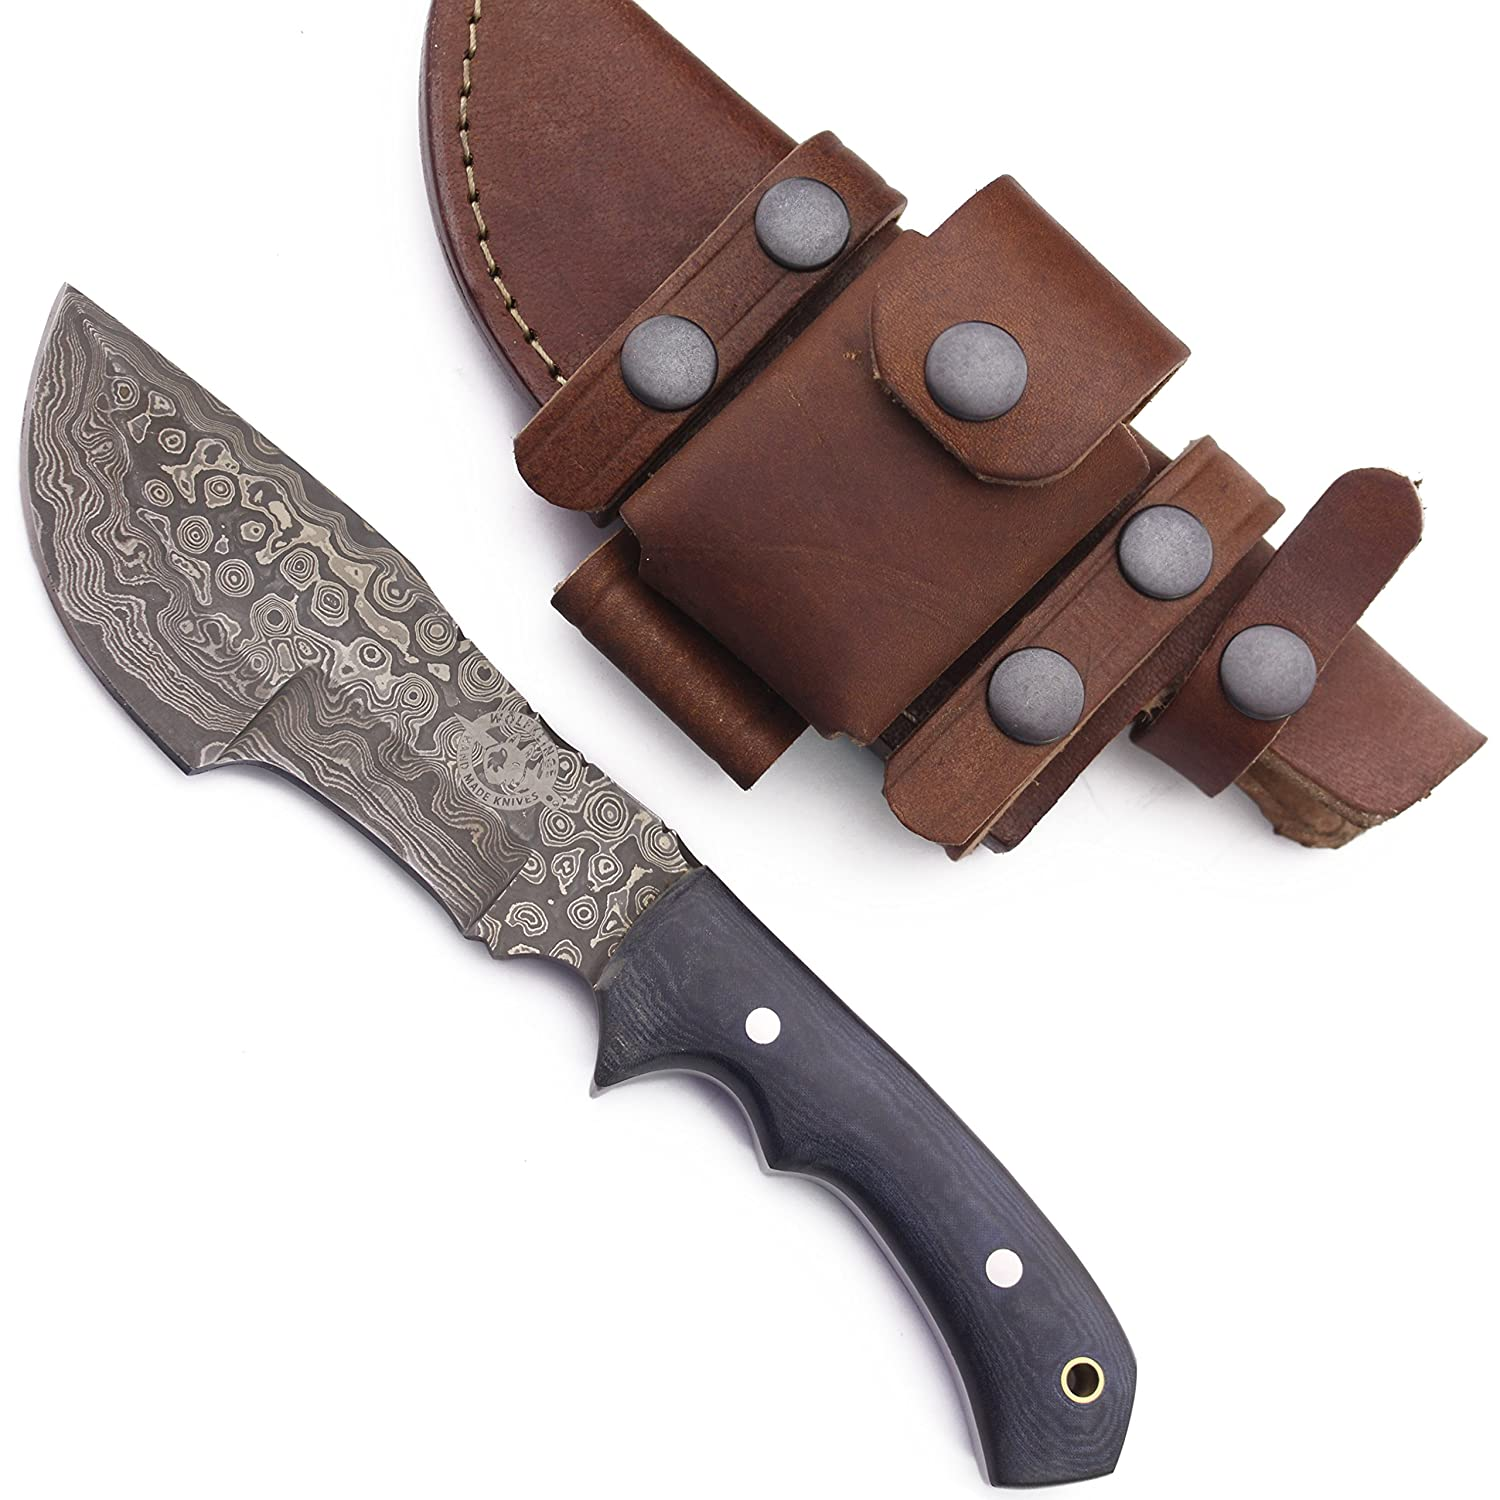 WolfKlinge DCX17-67 Handmade Damascus Steel Hunter Trackker, Micarta Handle, with Cowhide Leather Sheath